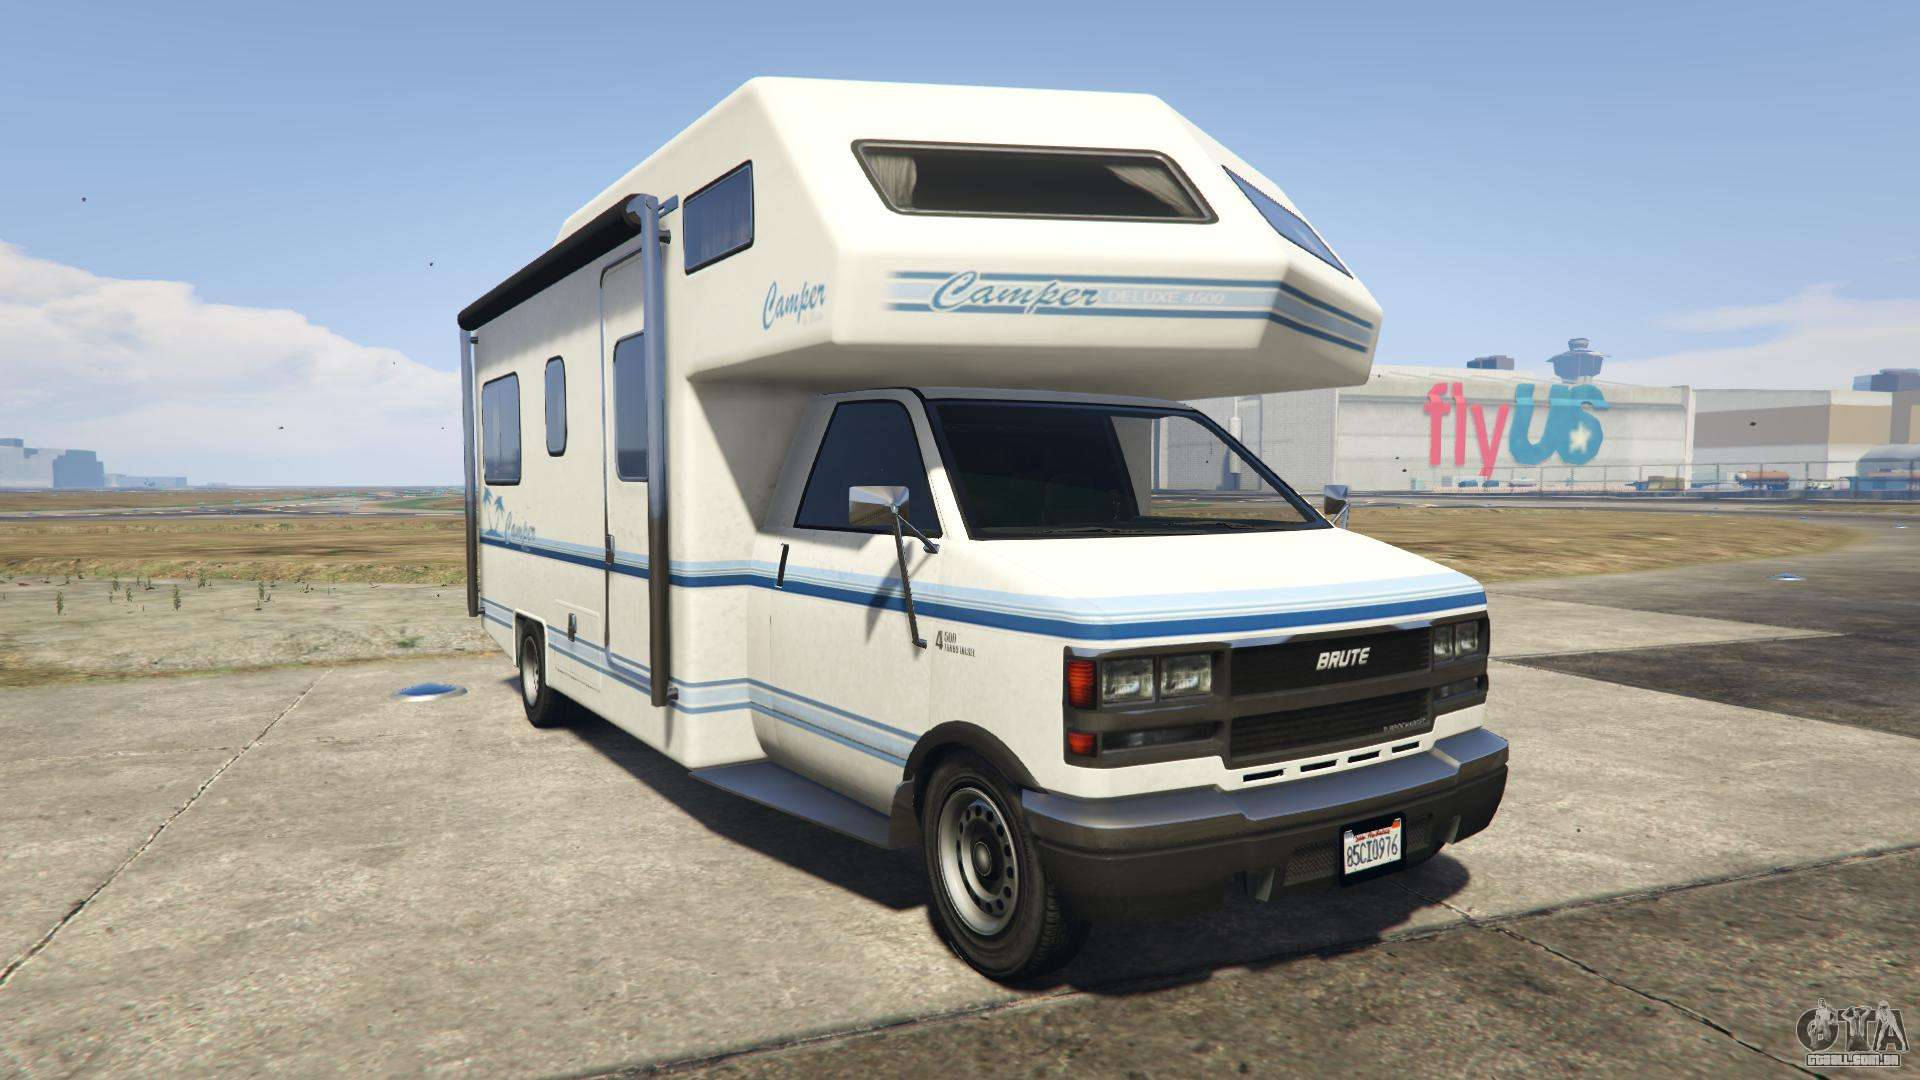 GTA 5 Brute Camper - vista frontal